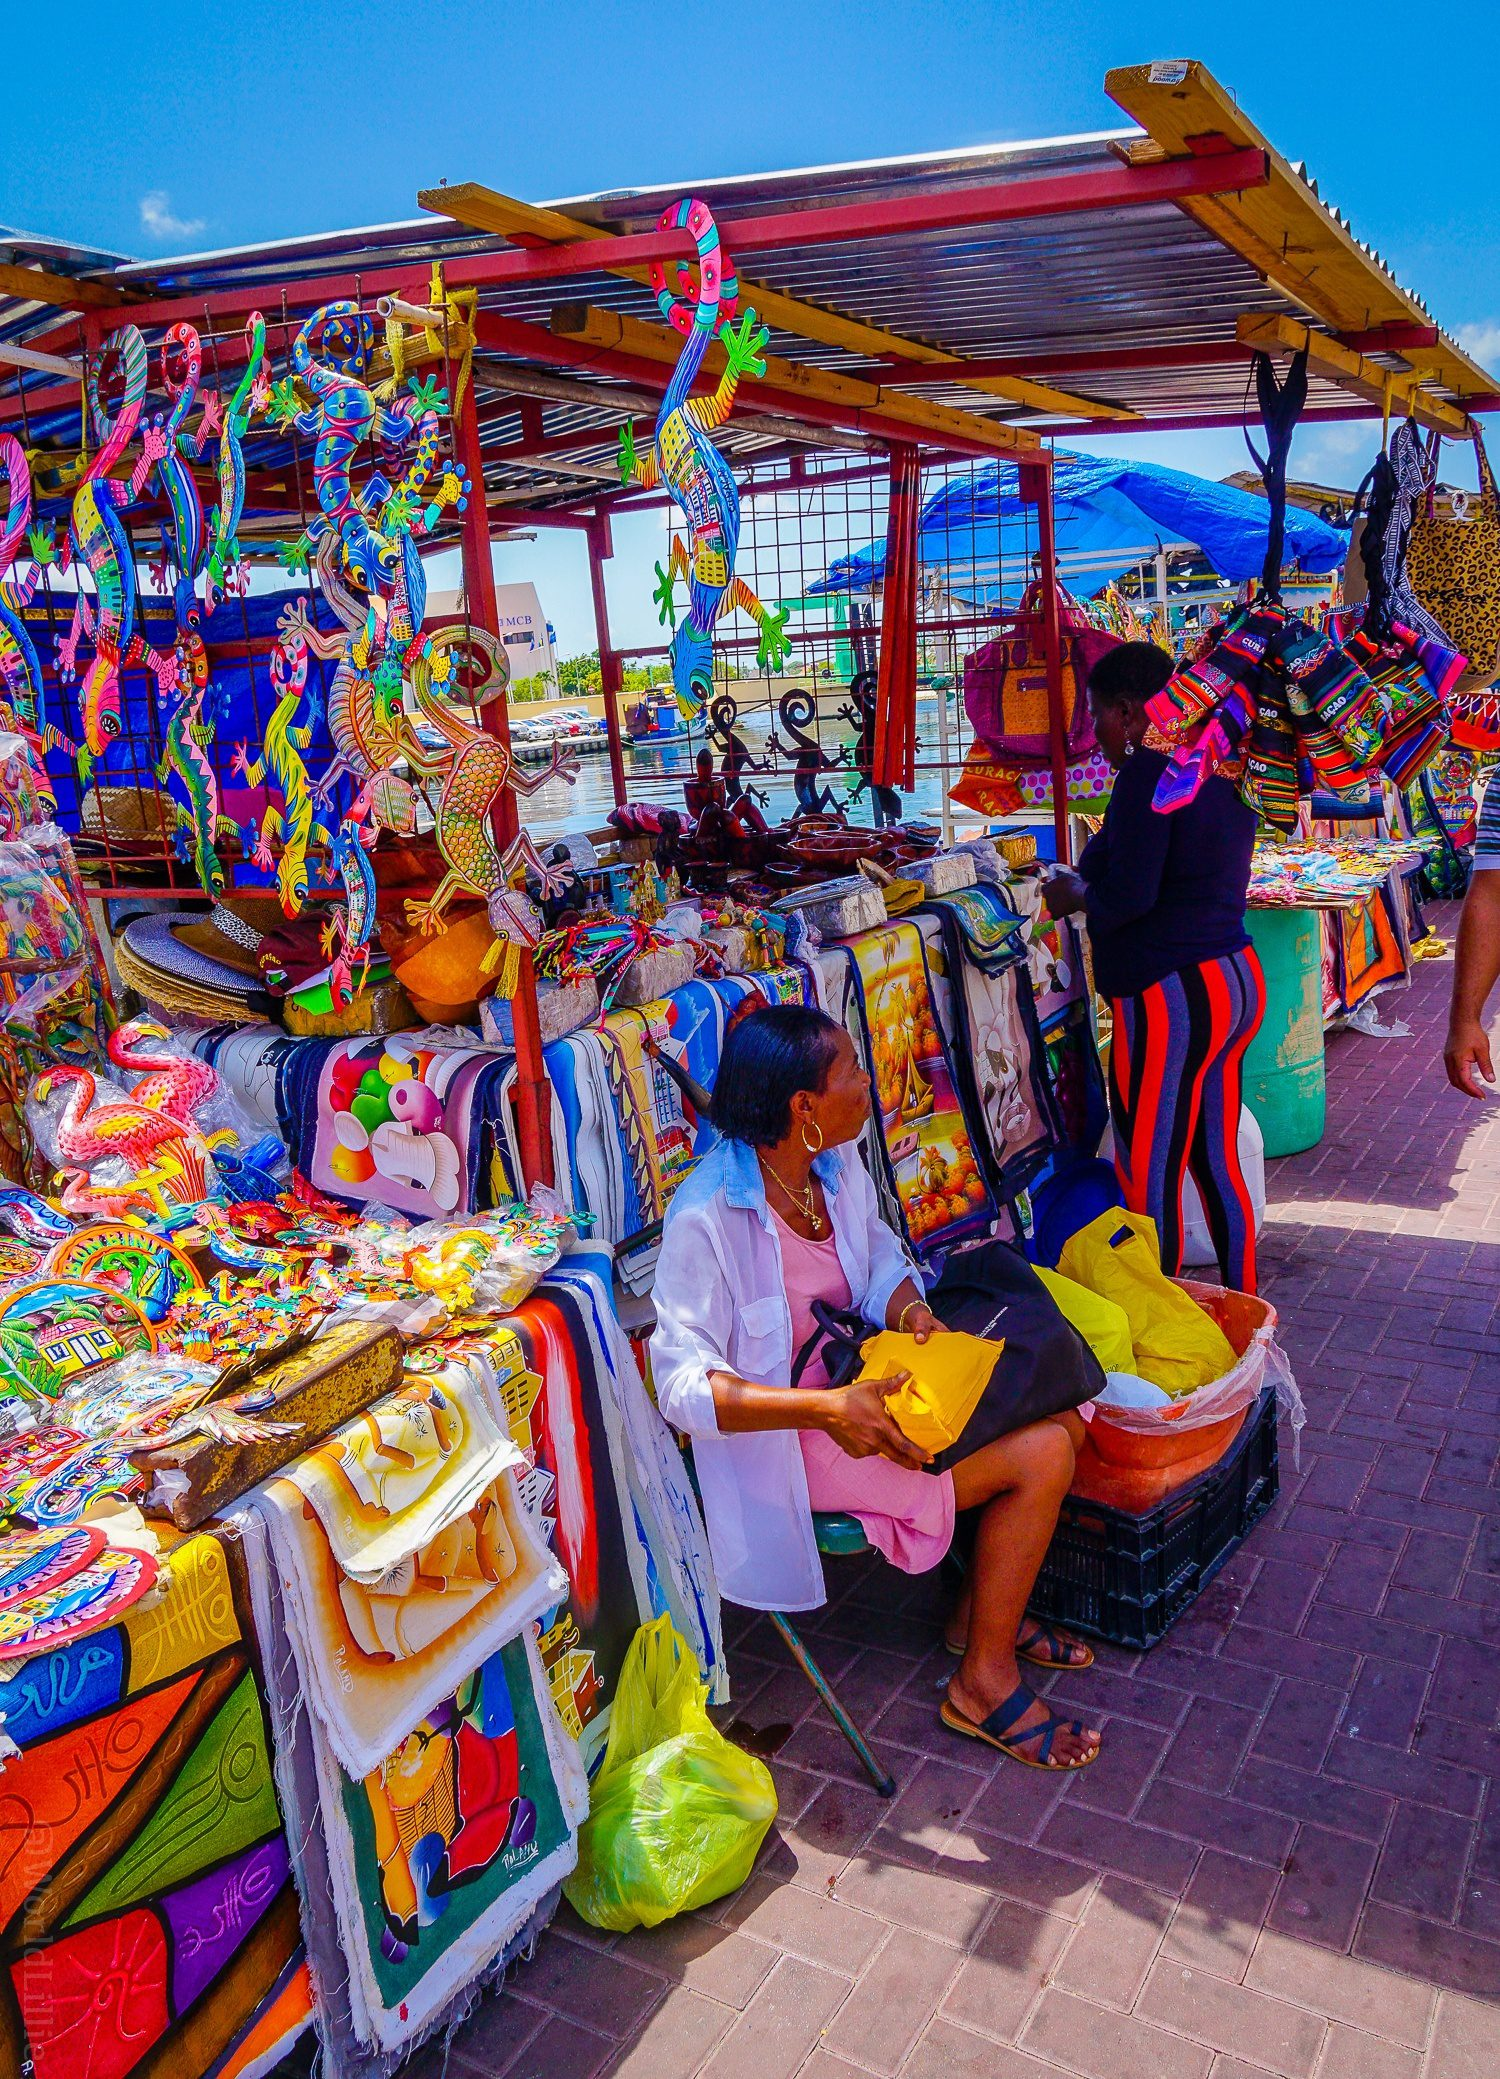 Vendors by the waterfront in Willemstad.